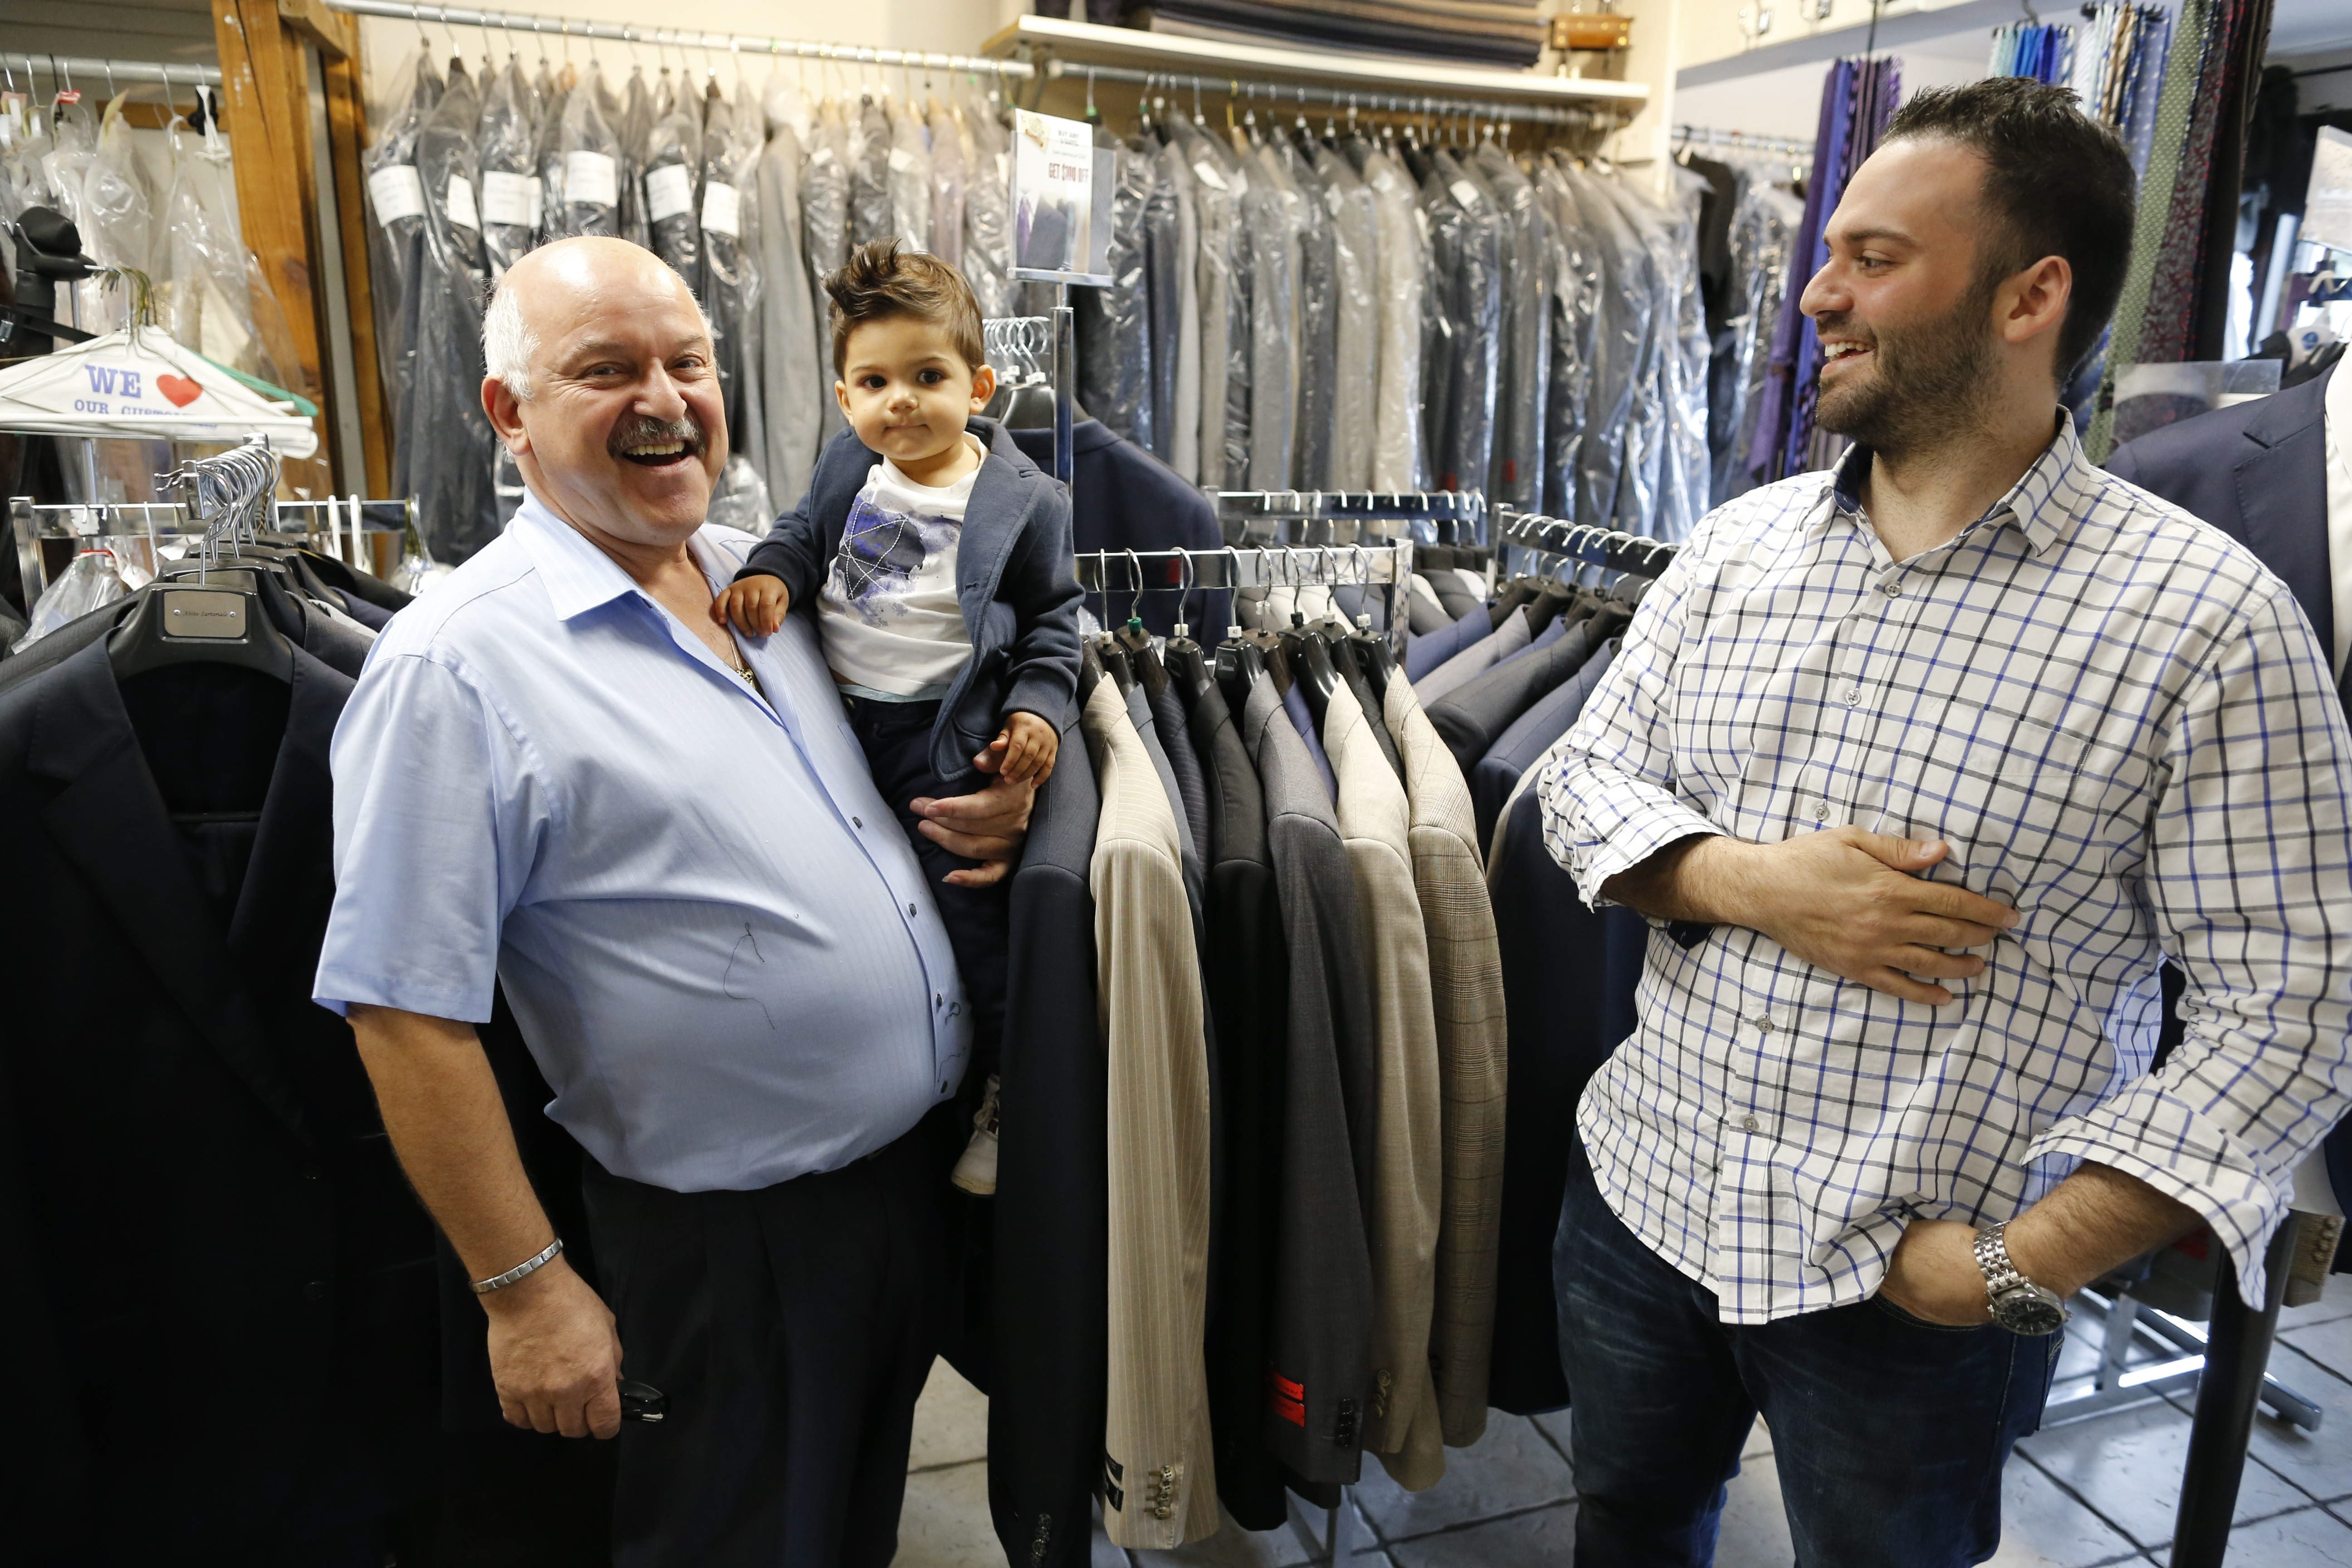 Gaetano Collana holds his 14-month-old grandson, Leonardo, while working in Tom & Luigi's Tailor Shop in West Seneca, which he runs with his son, Luigi, right.